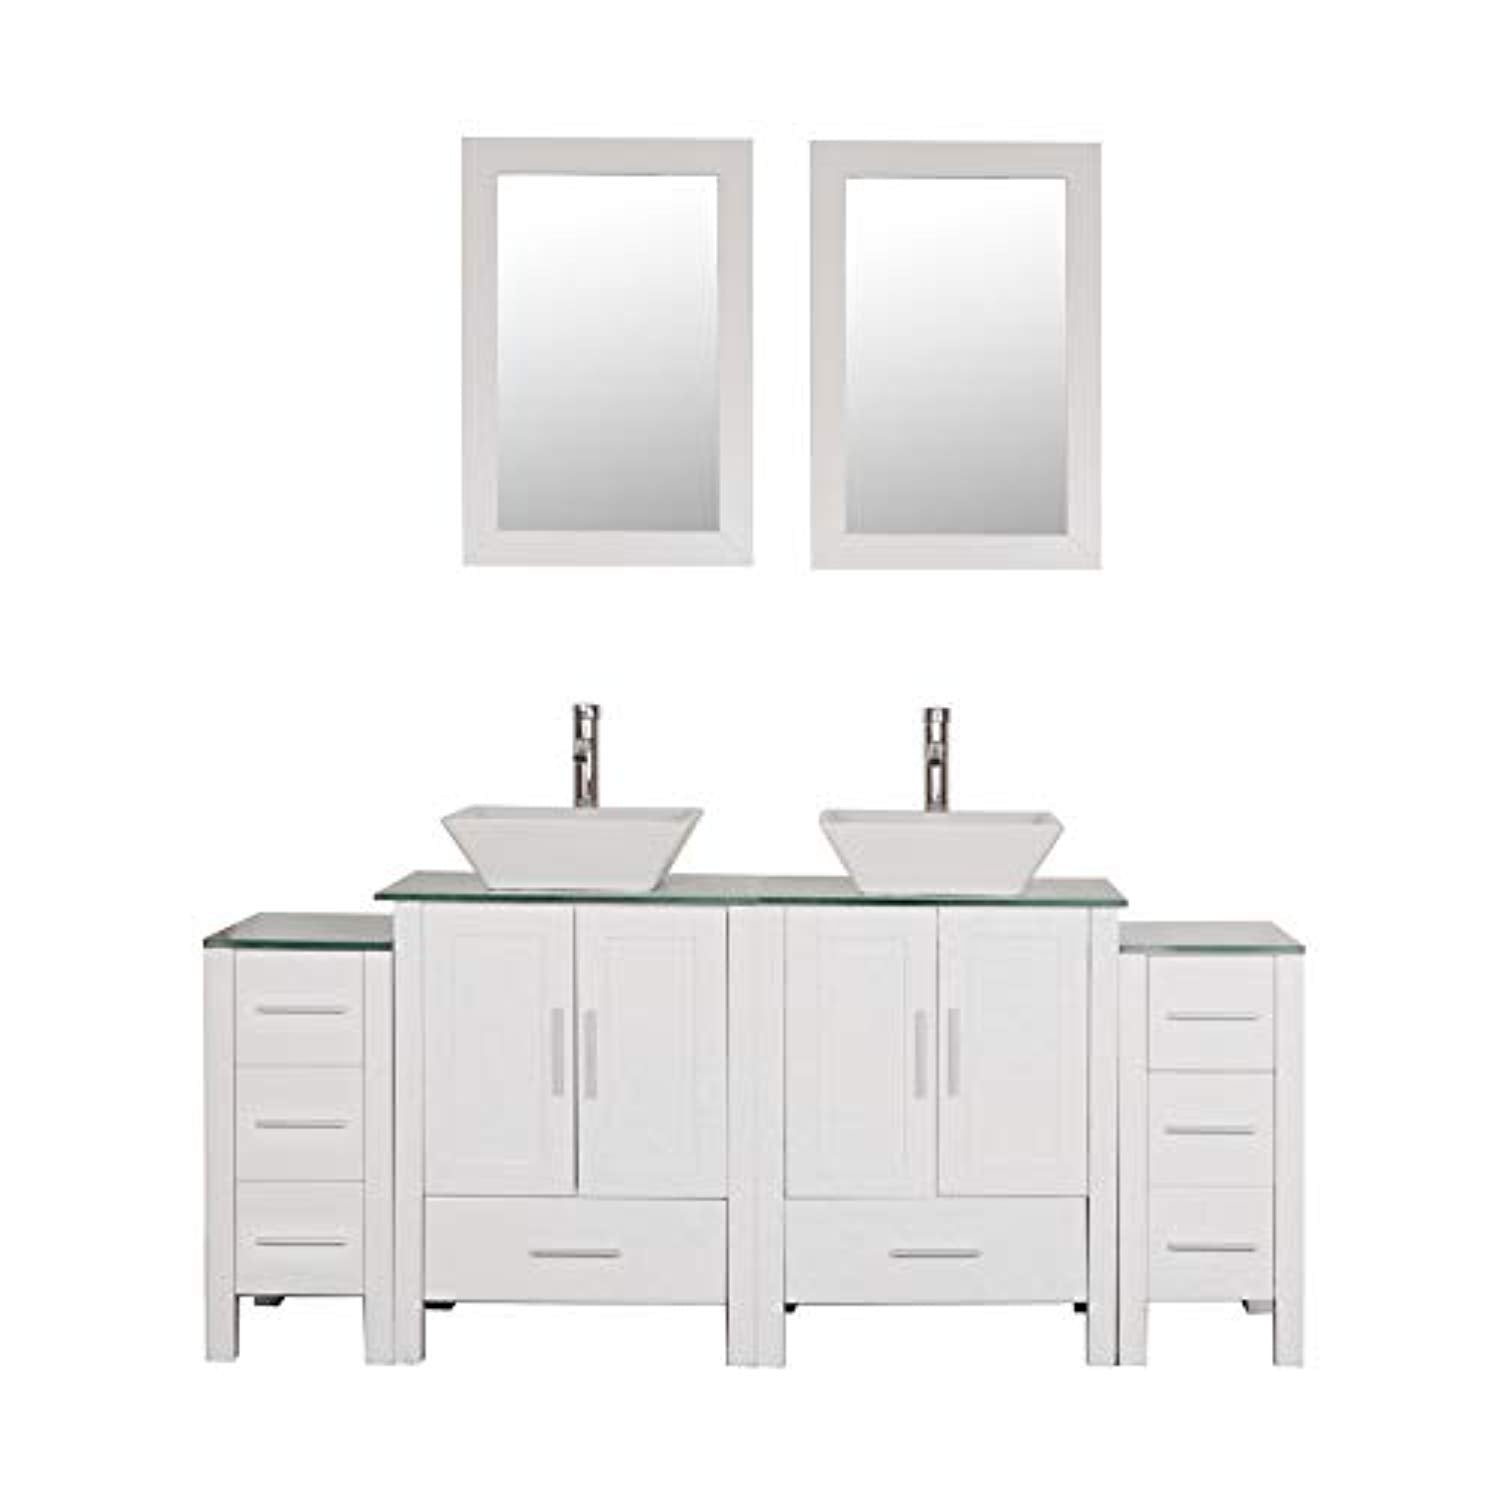 Fabulous Homecart 72 Double Sink Bathroom Vanity Cabinet Combo Glass Top White Wood W 2 Basin Faucets Mirrors And Drains Home Interior And Landscaping Synyenasavecom